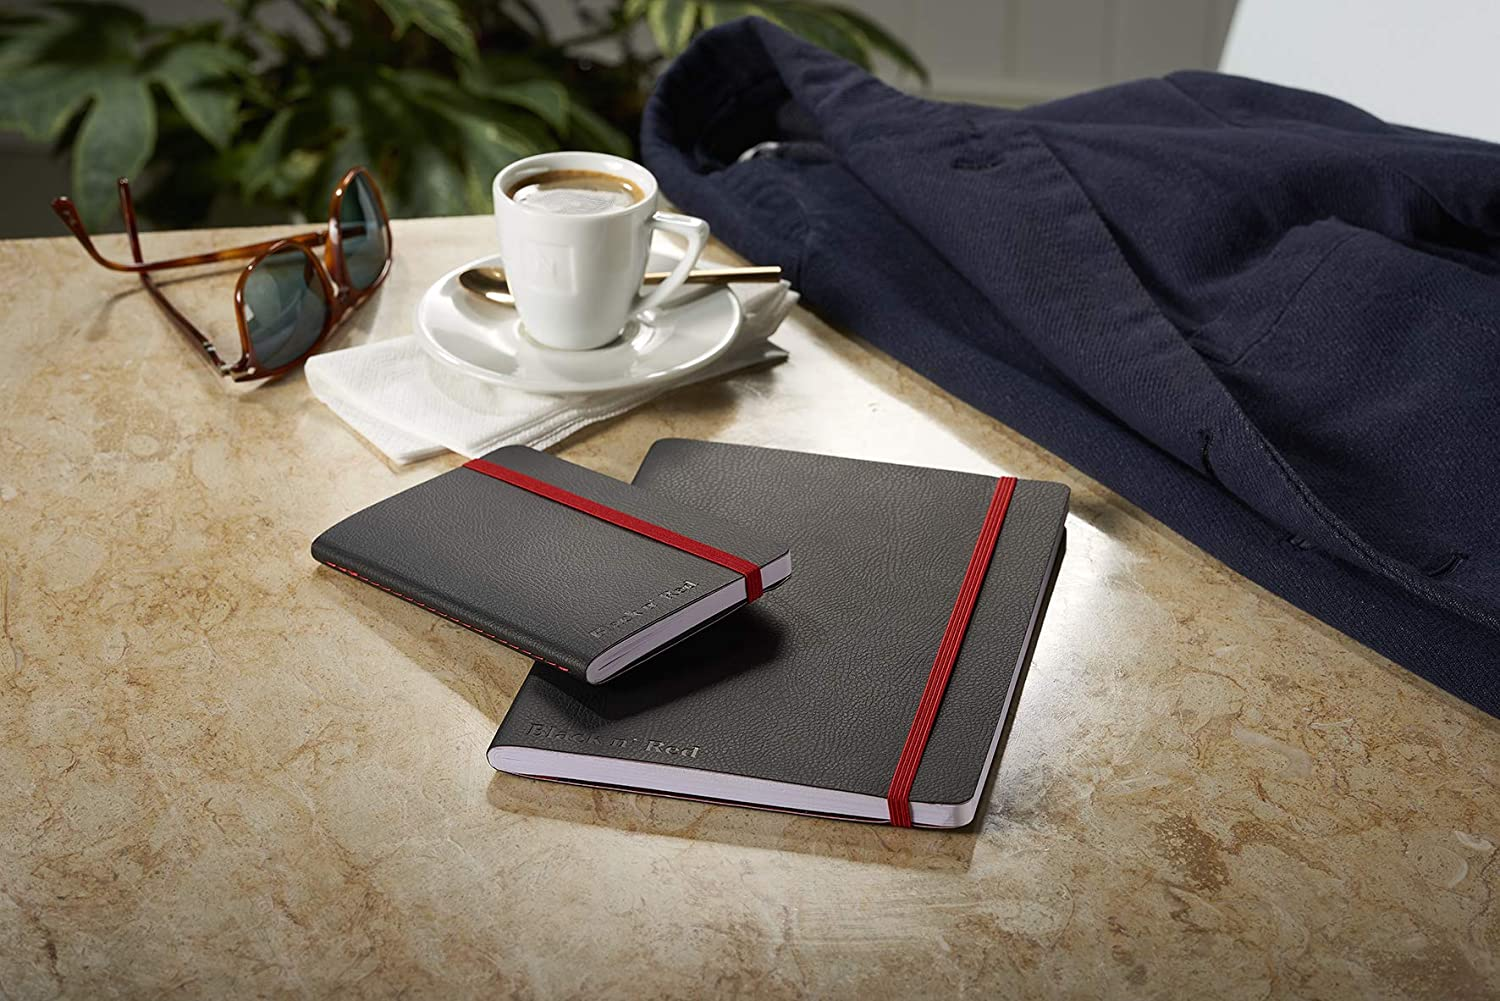 144 Page 1 Notebook Ruled and Numbered Notebook Oxford Black n Red A5 Soft Cover Casebound Business Journal